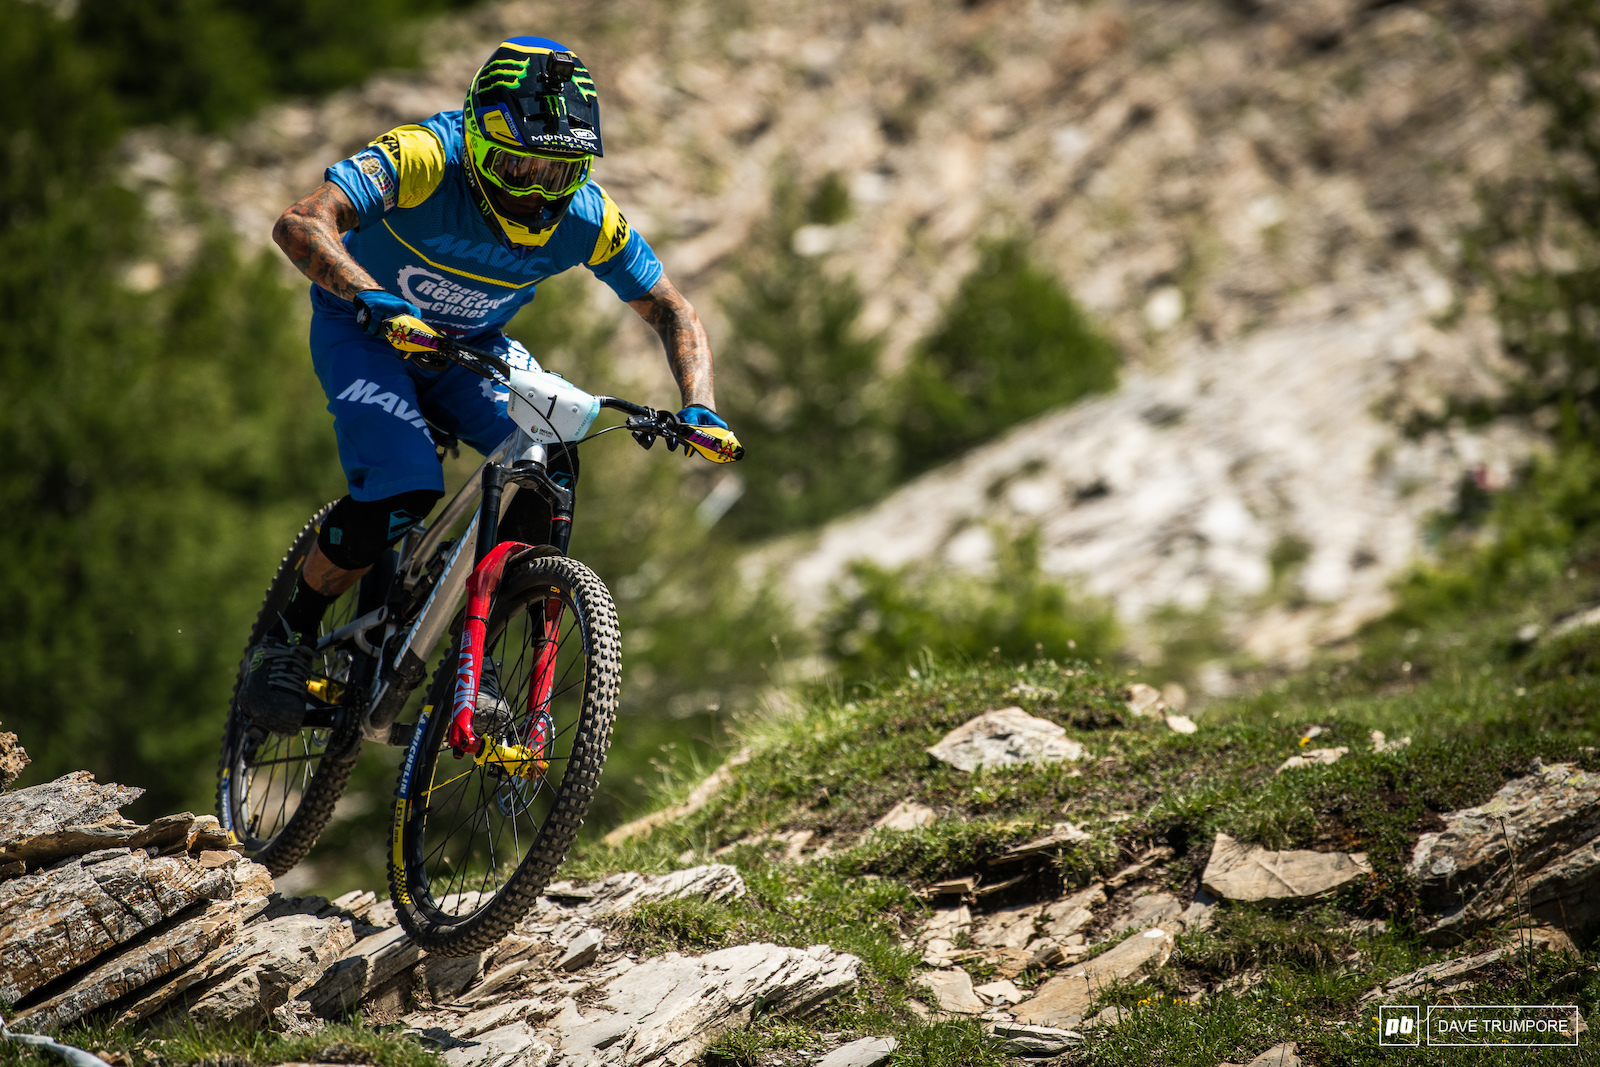 Sam Hill skimming over the sharp rocks on Stage 7